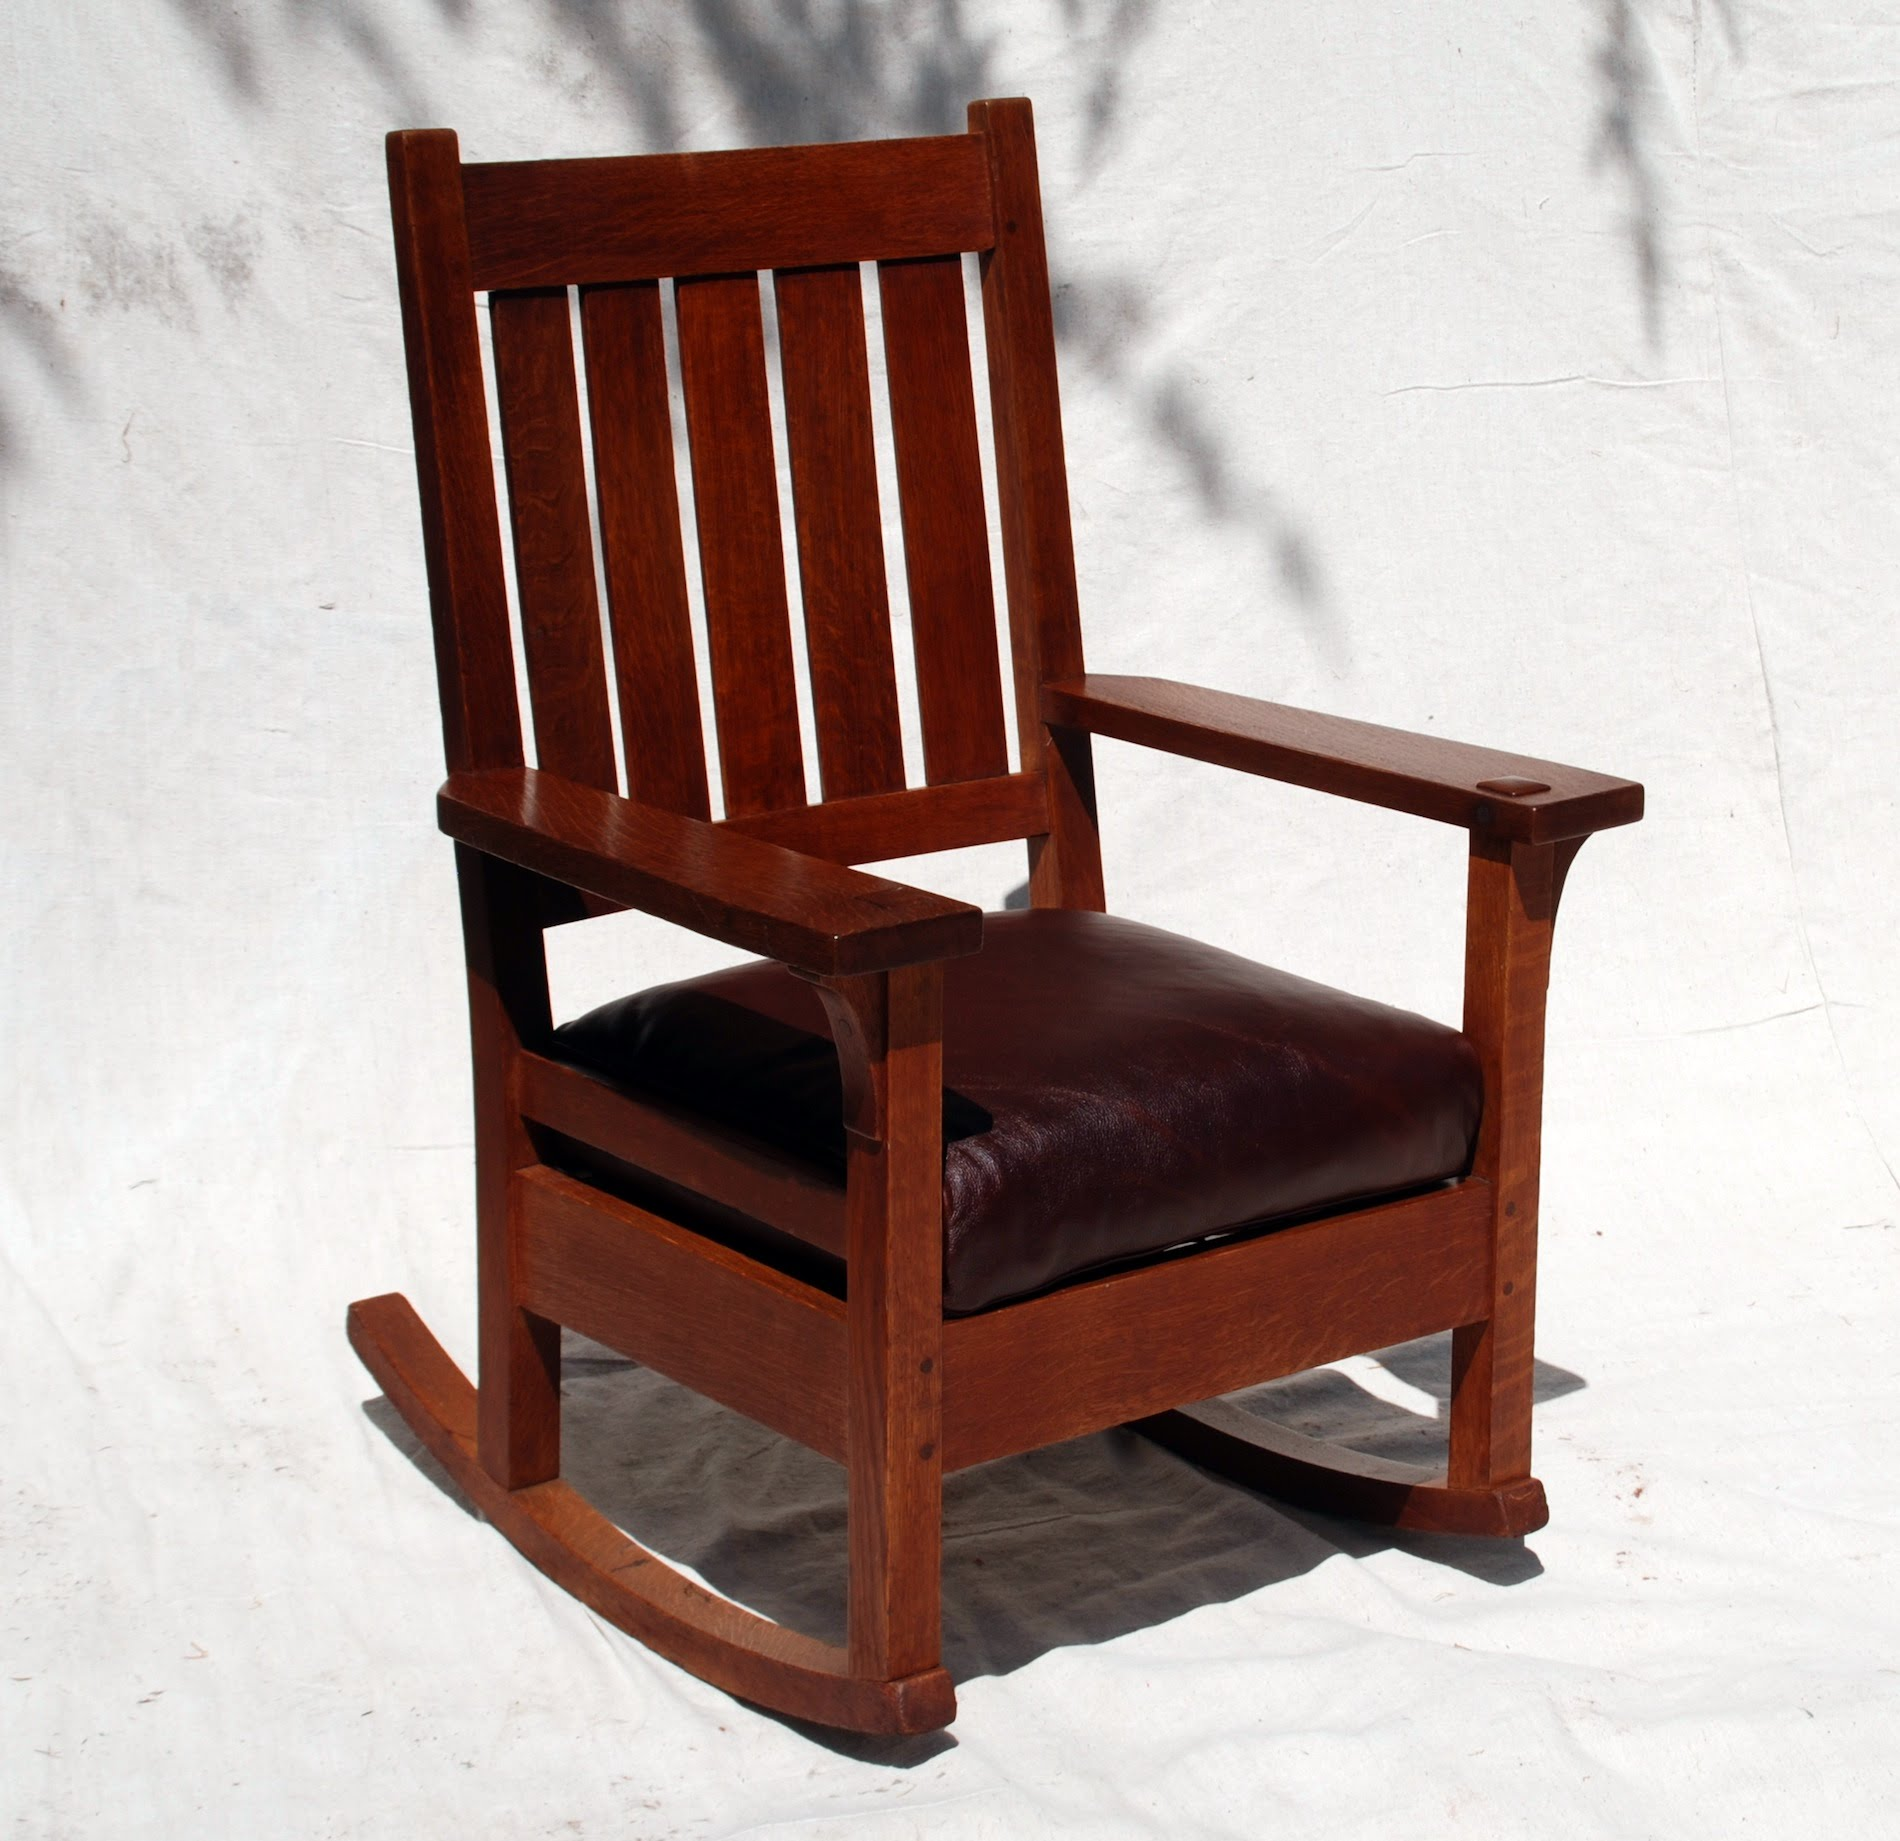 Voorhees Craftsman Mission Oak Furniture Early Gustav Stickley